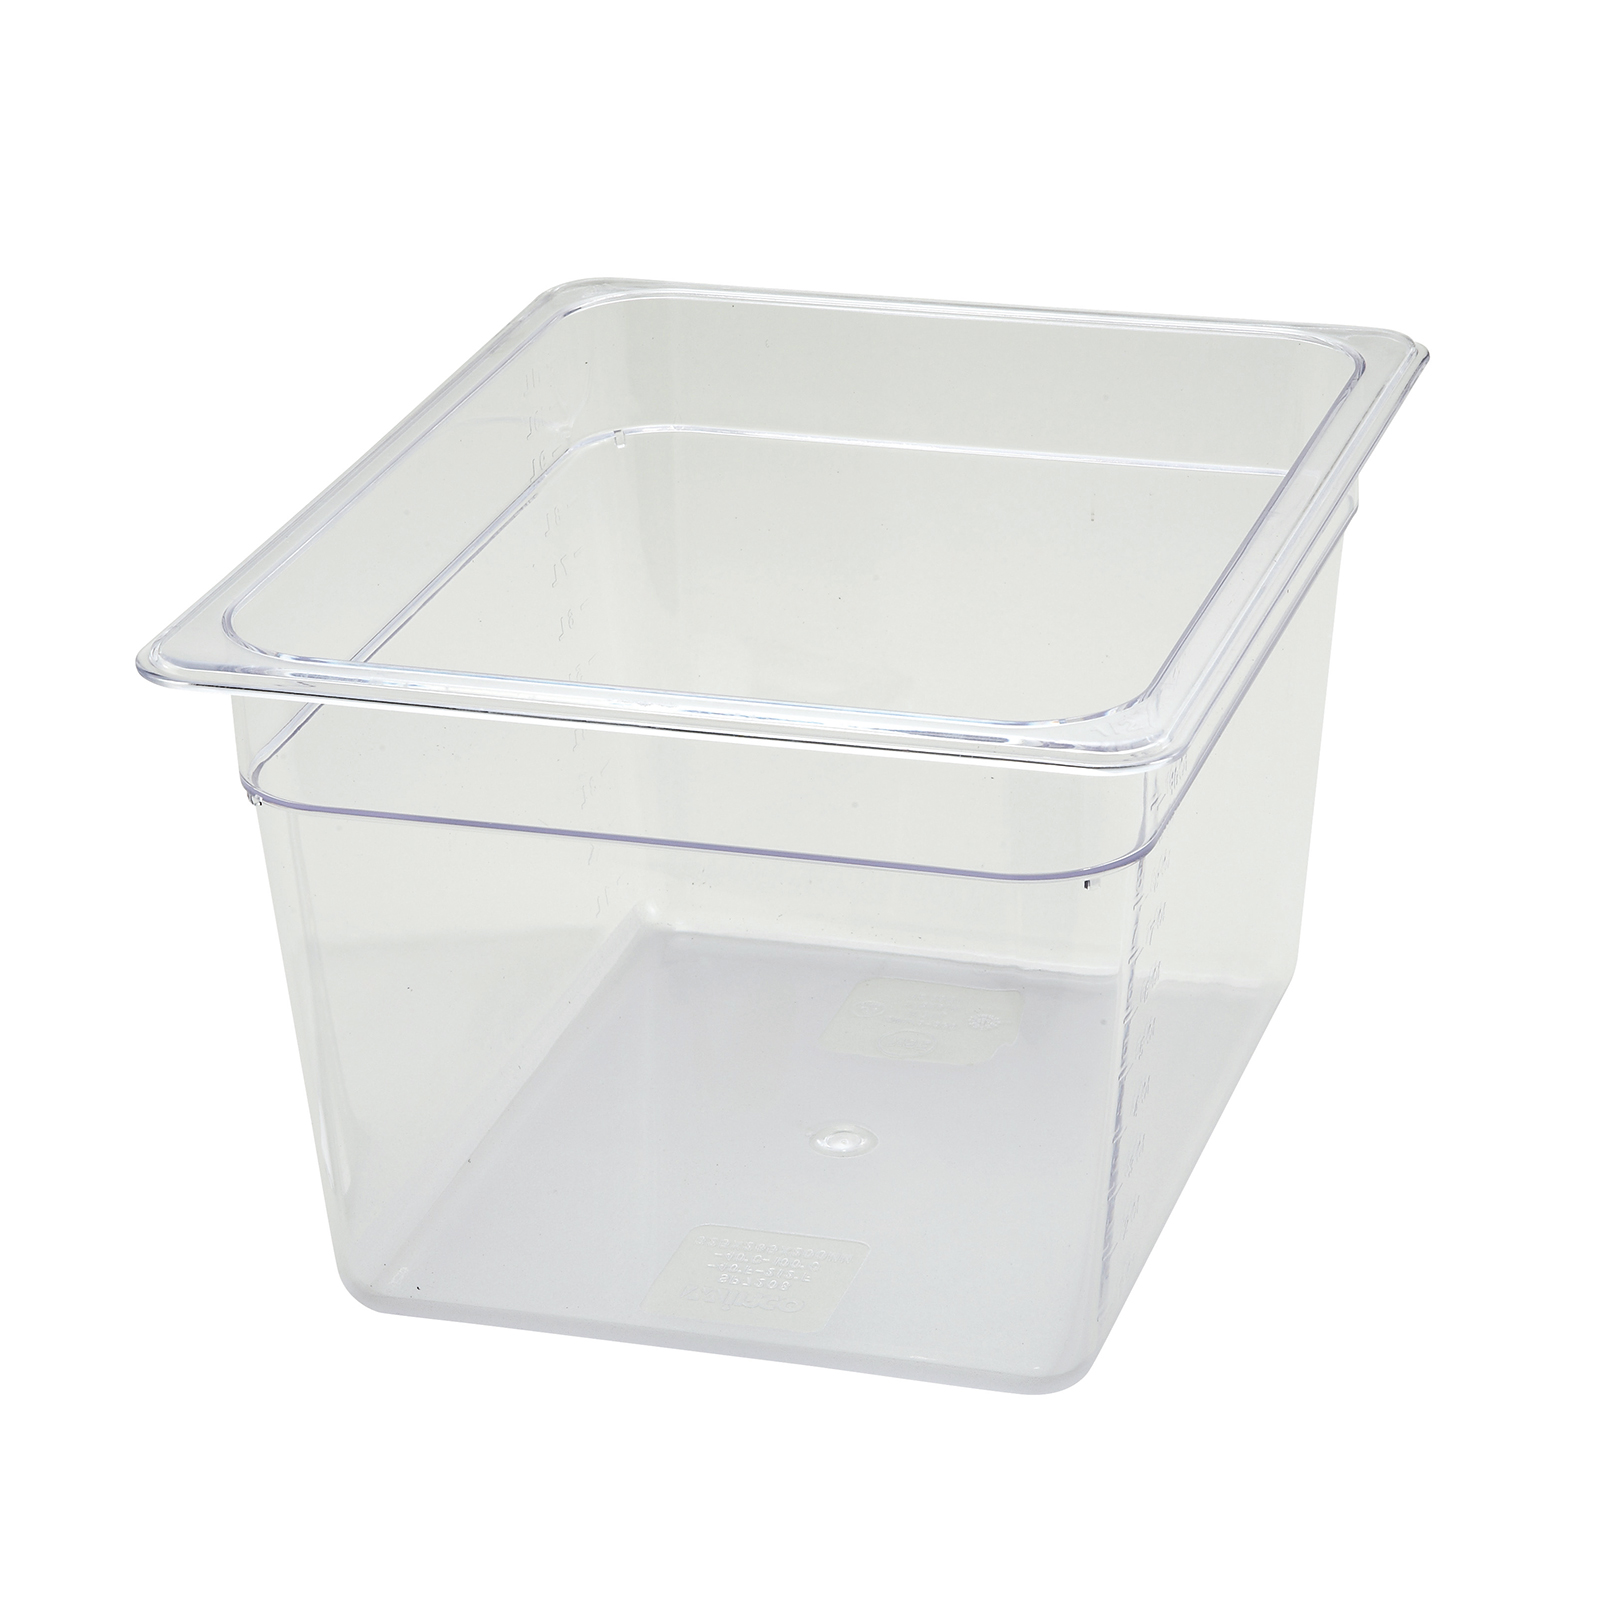 Winco SP7208 food pan, plastic